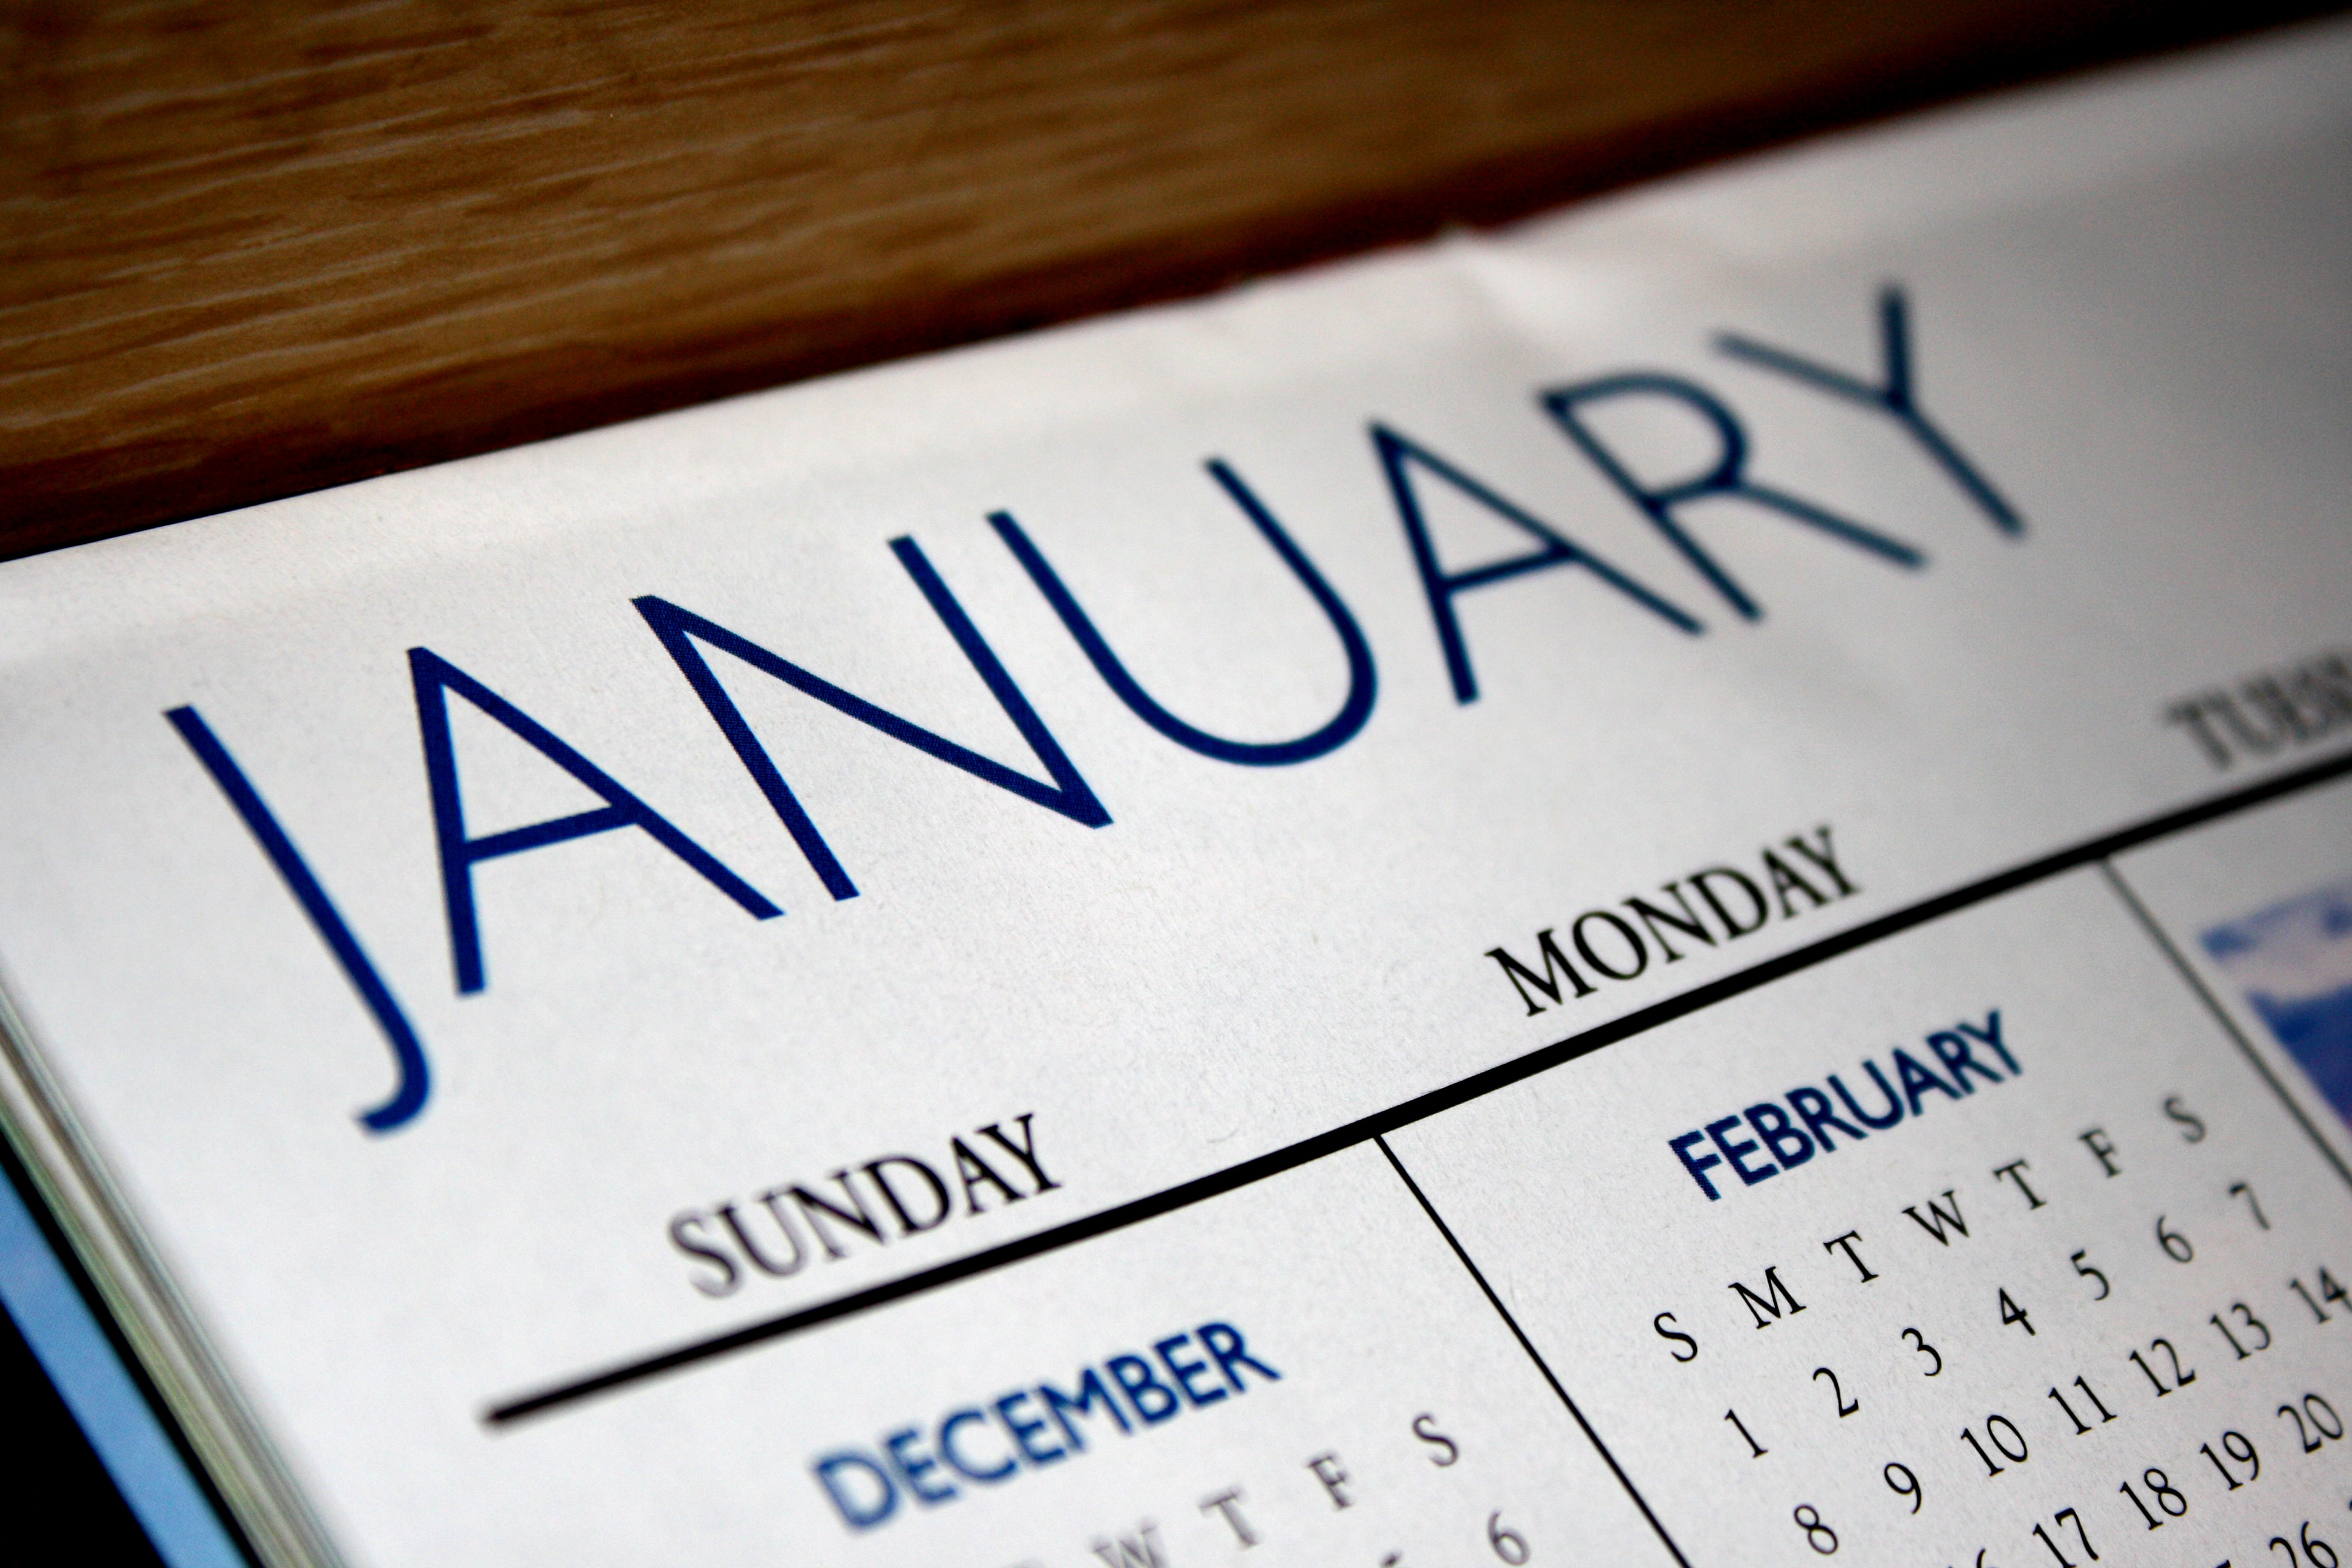 Trinity Evangelical Lutheran Church - Yearly School Calendars